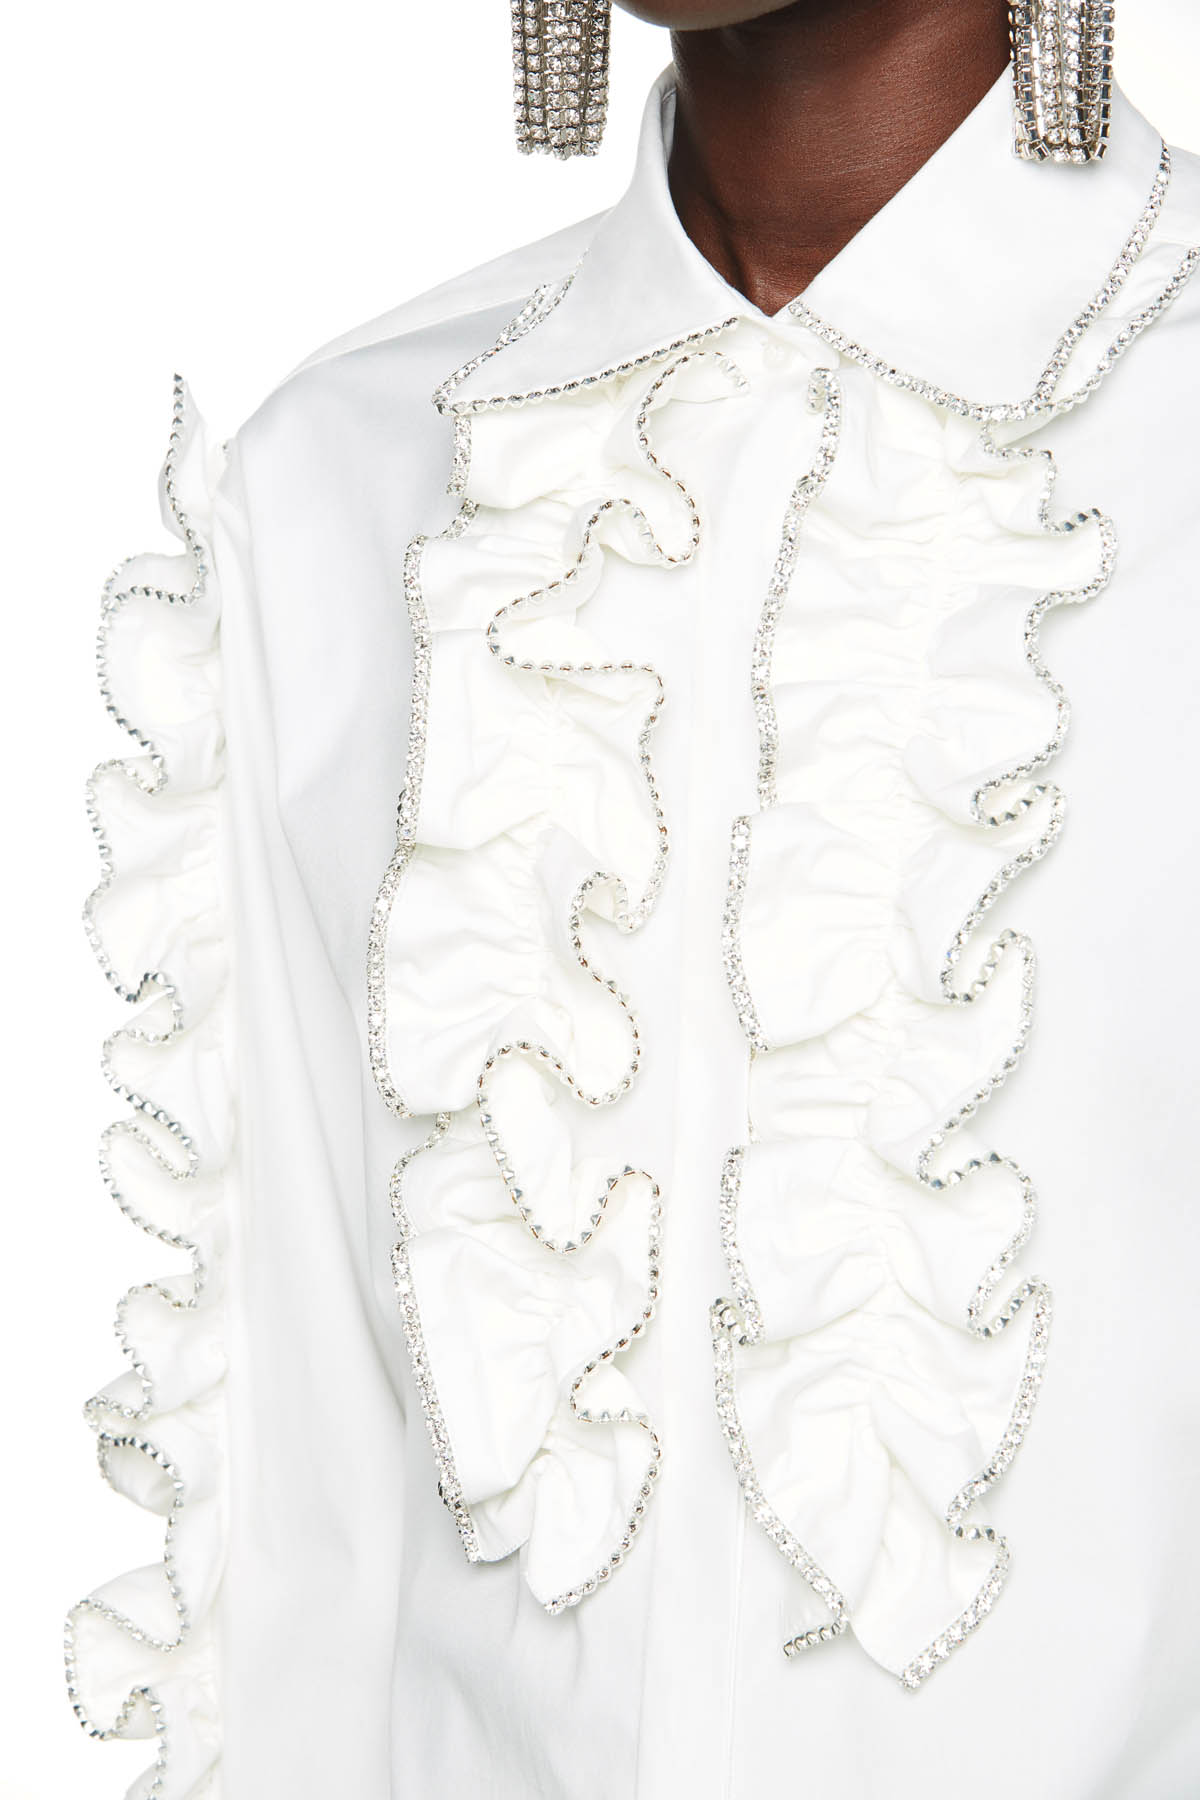 Tailored long sleeve with crystal trim and ruffle detail. Available in white.